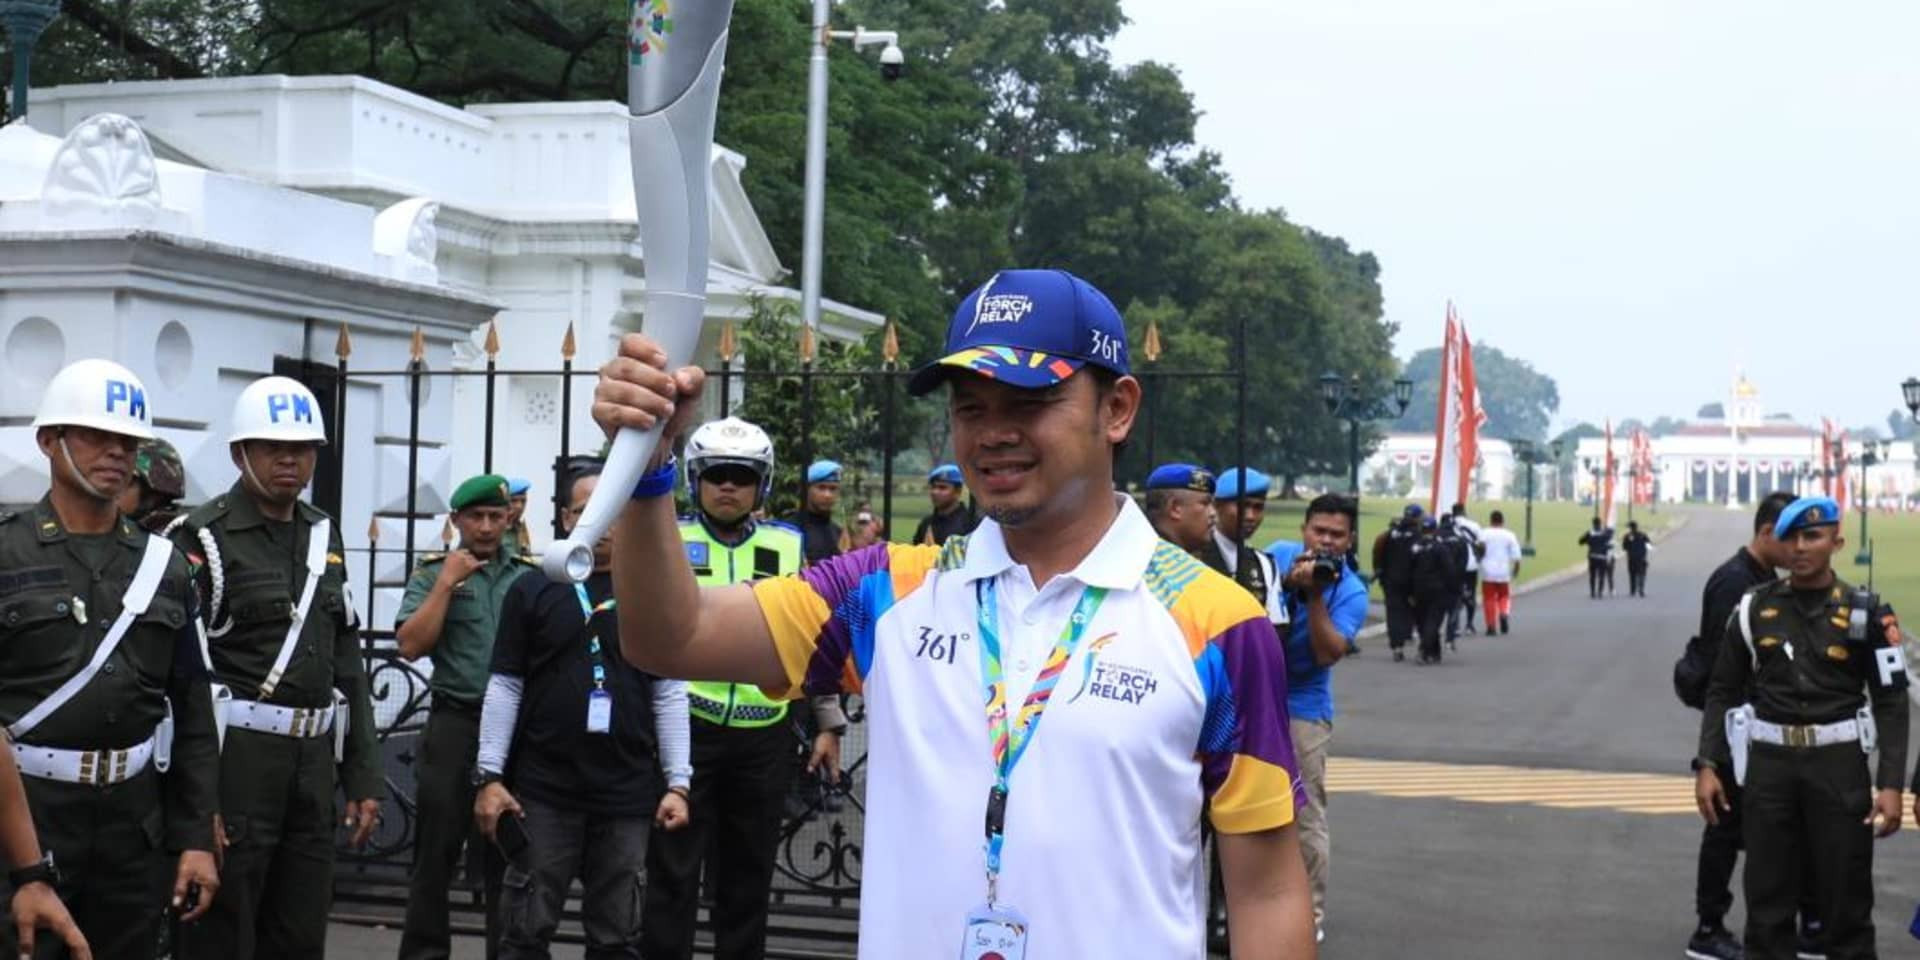 Asian Games Torch Relay continues with journey from Cianjur to Cipanas